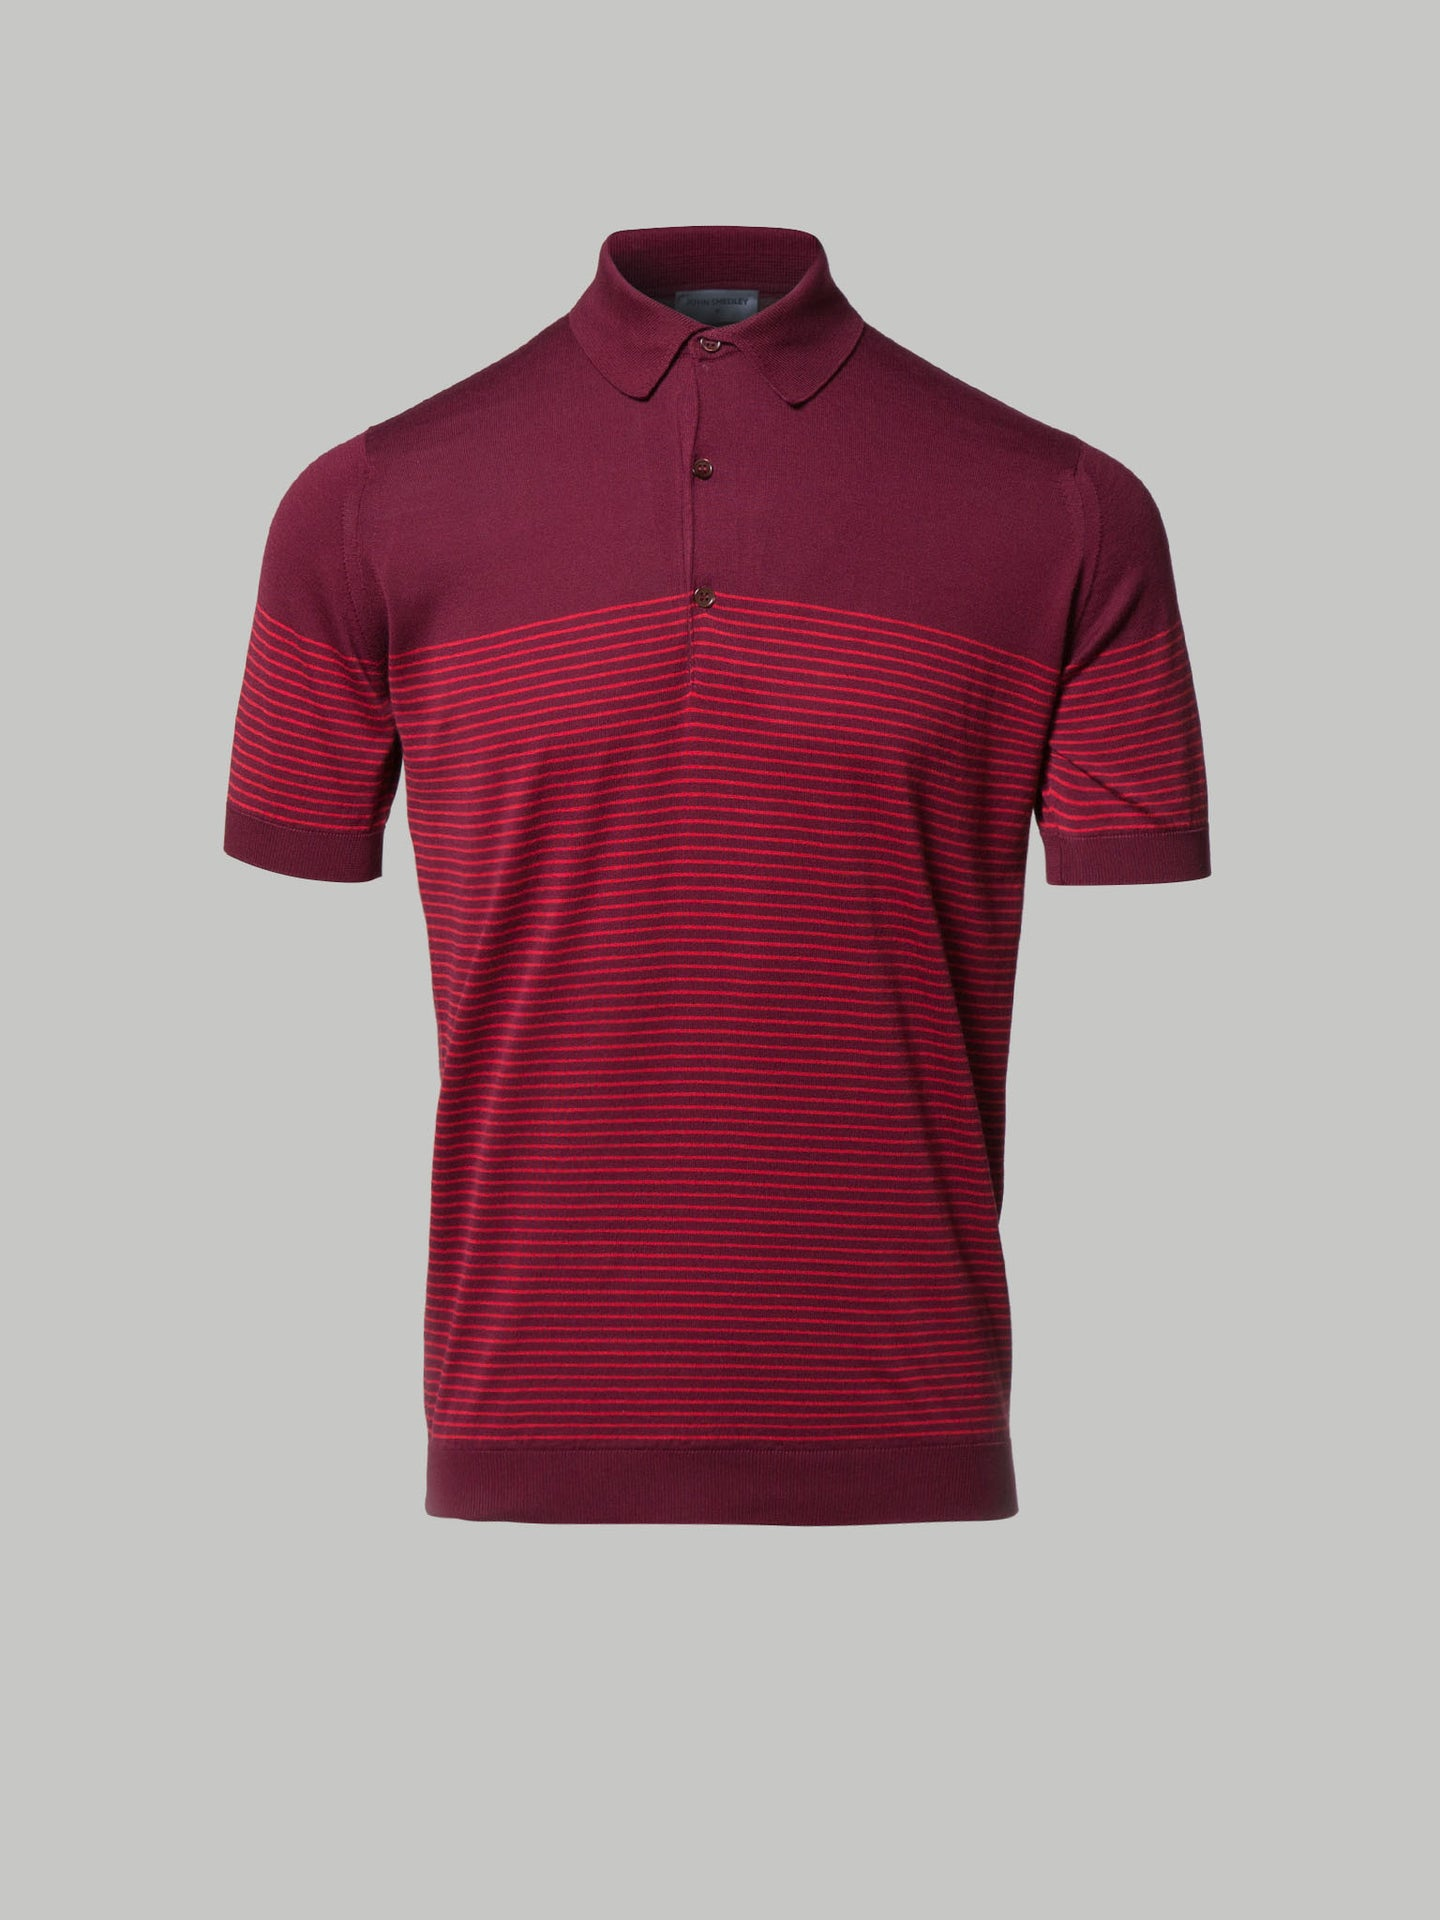 John Smedley Viking Polo (Bordeaux and Red Stripe)